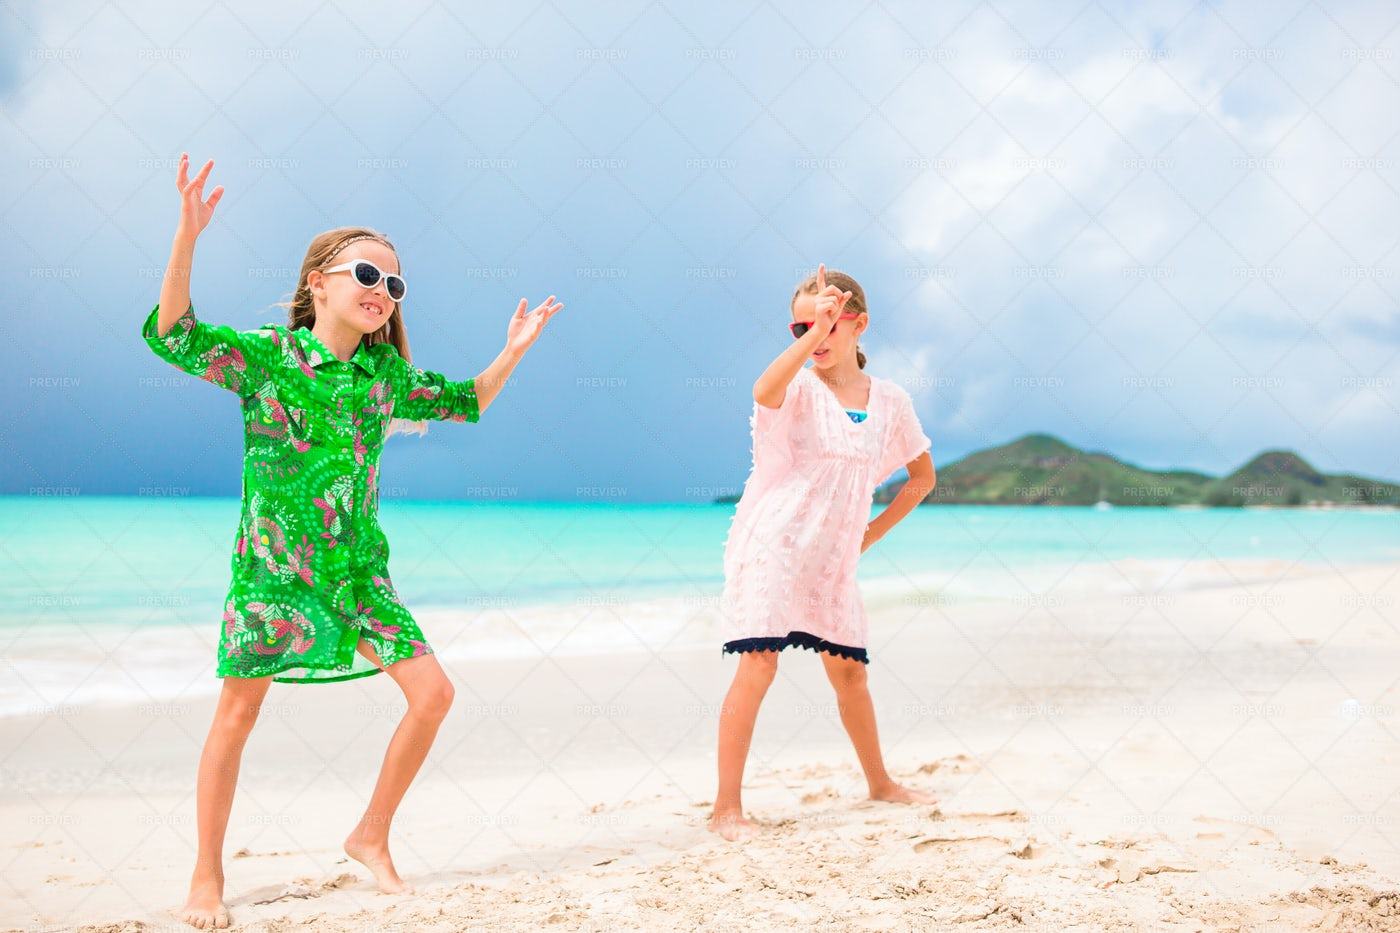 Sisters Dancing Together On Beach: Stock Photos